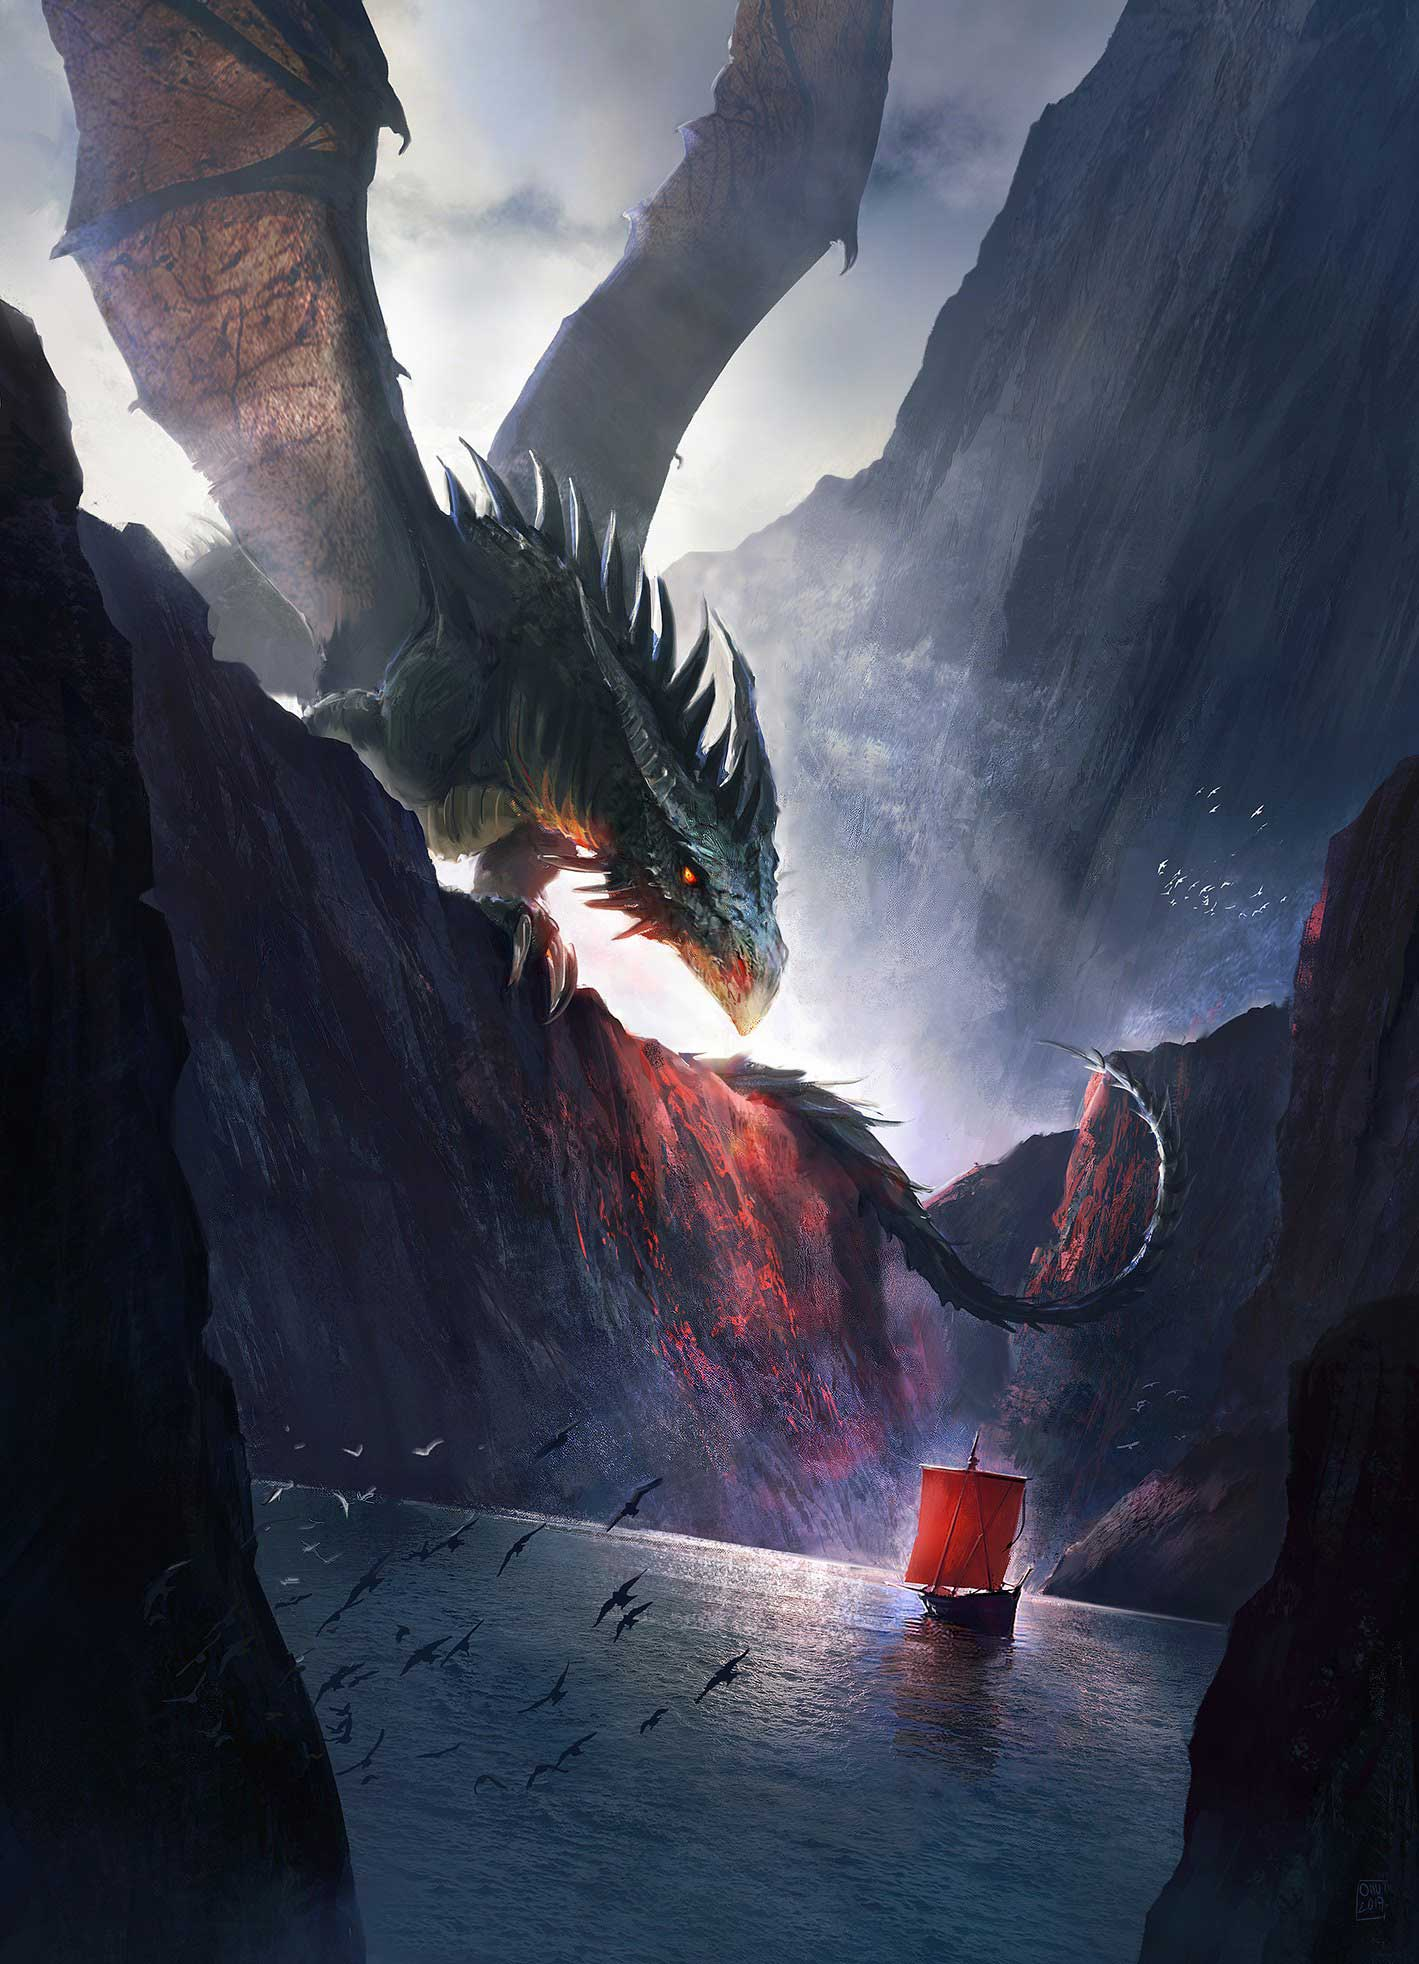 Digital illustration of a dragon above a bay with a ship.